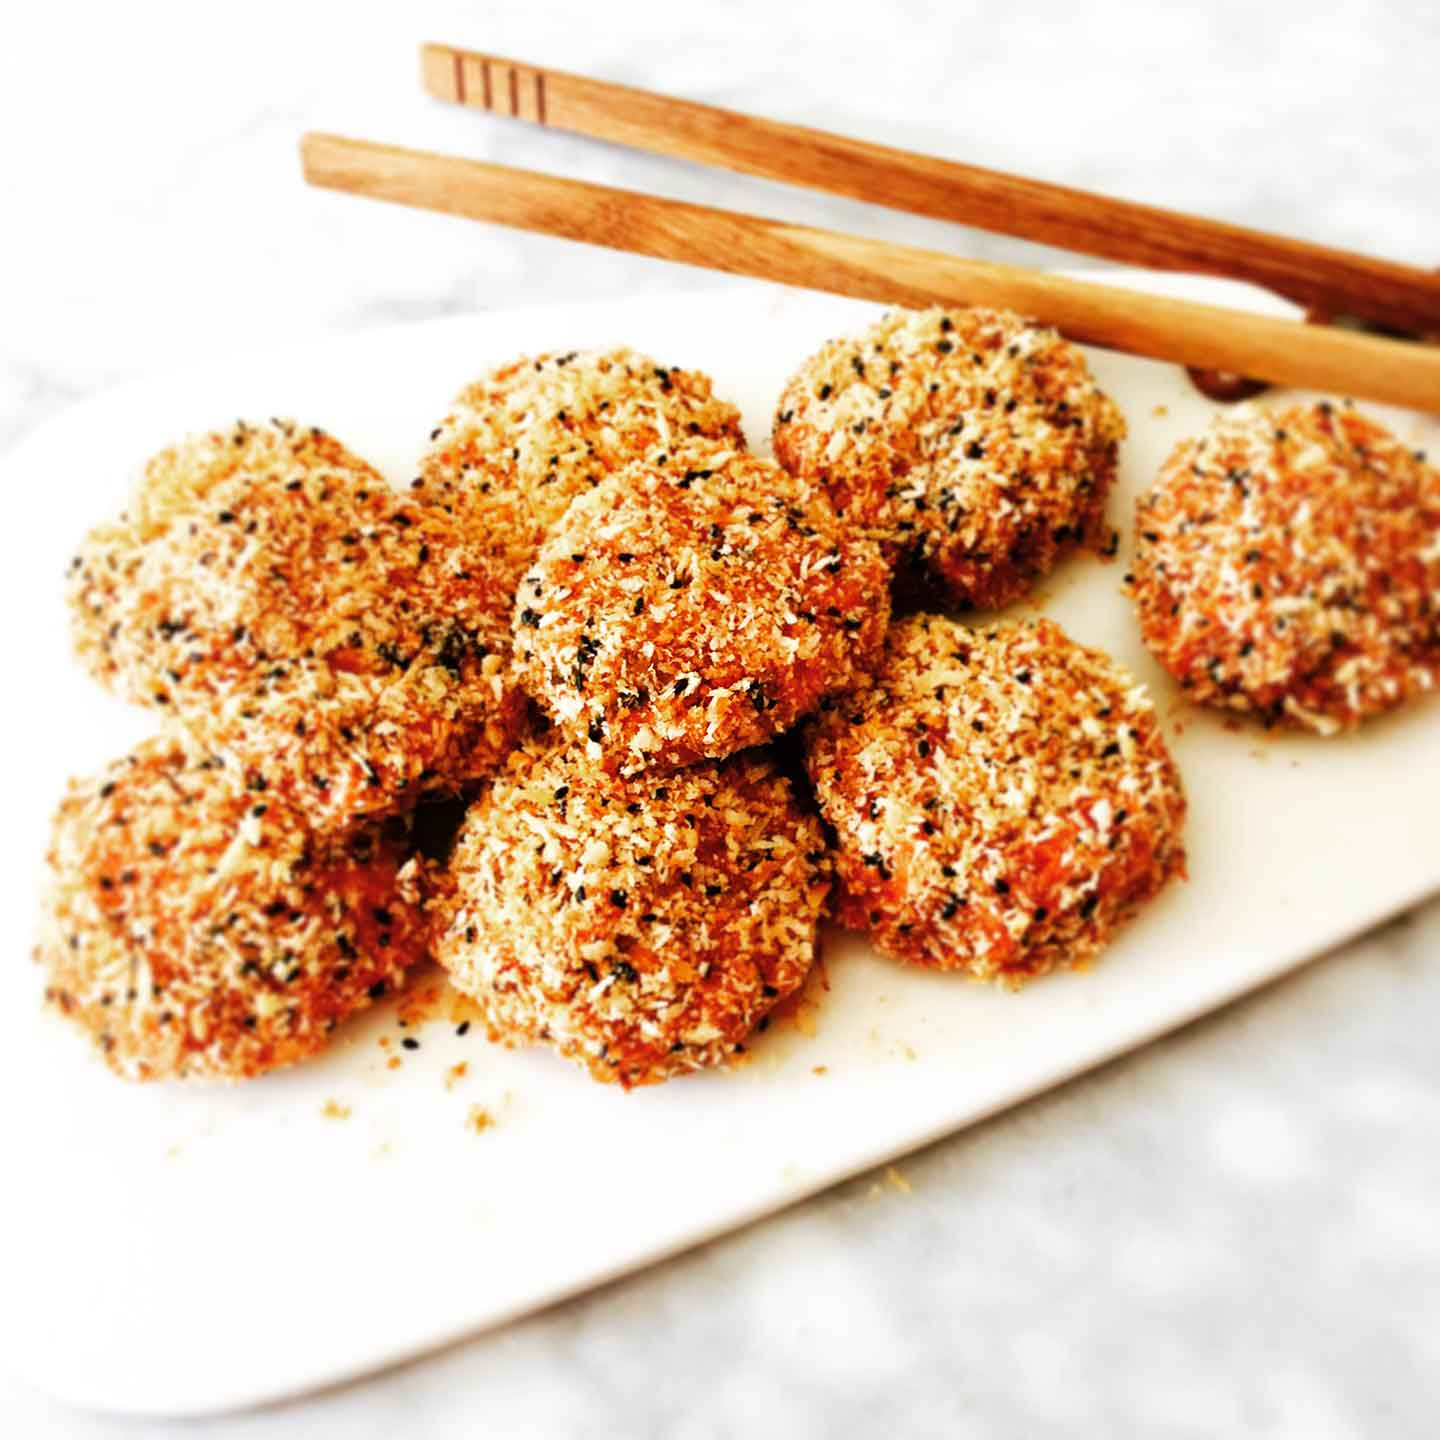 Oven baked japanese croquettes made from sweet potato